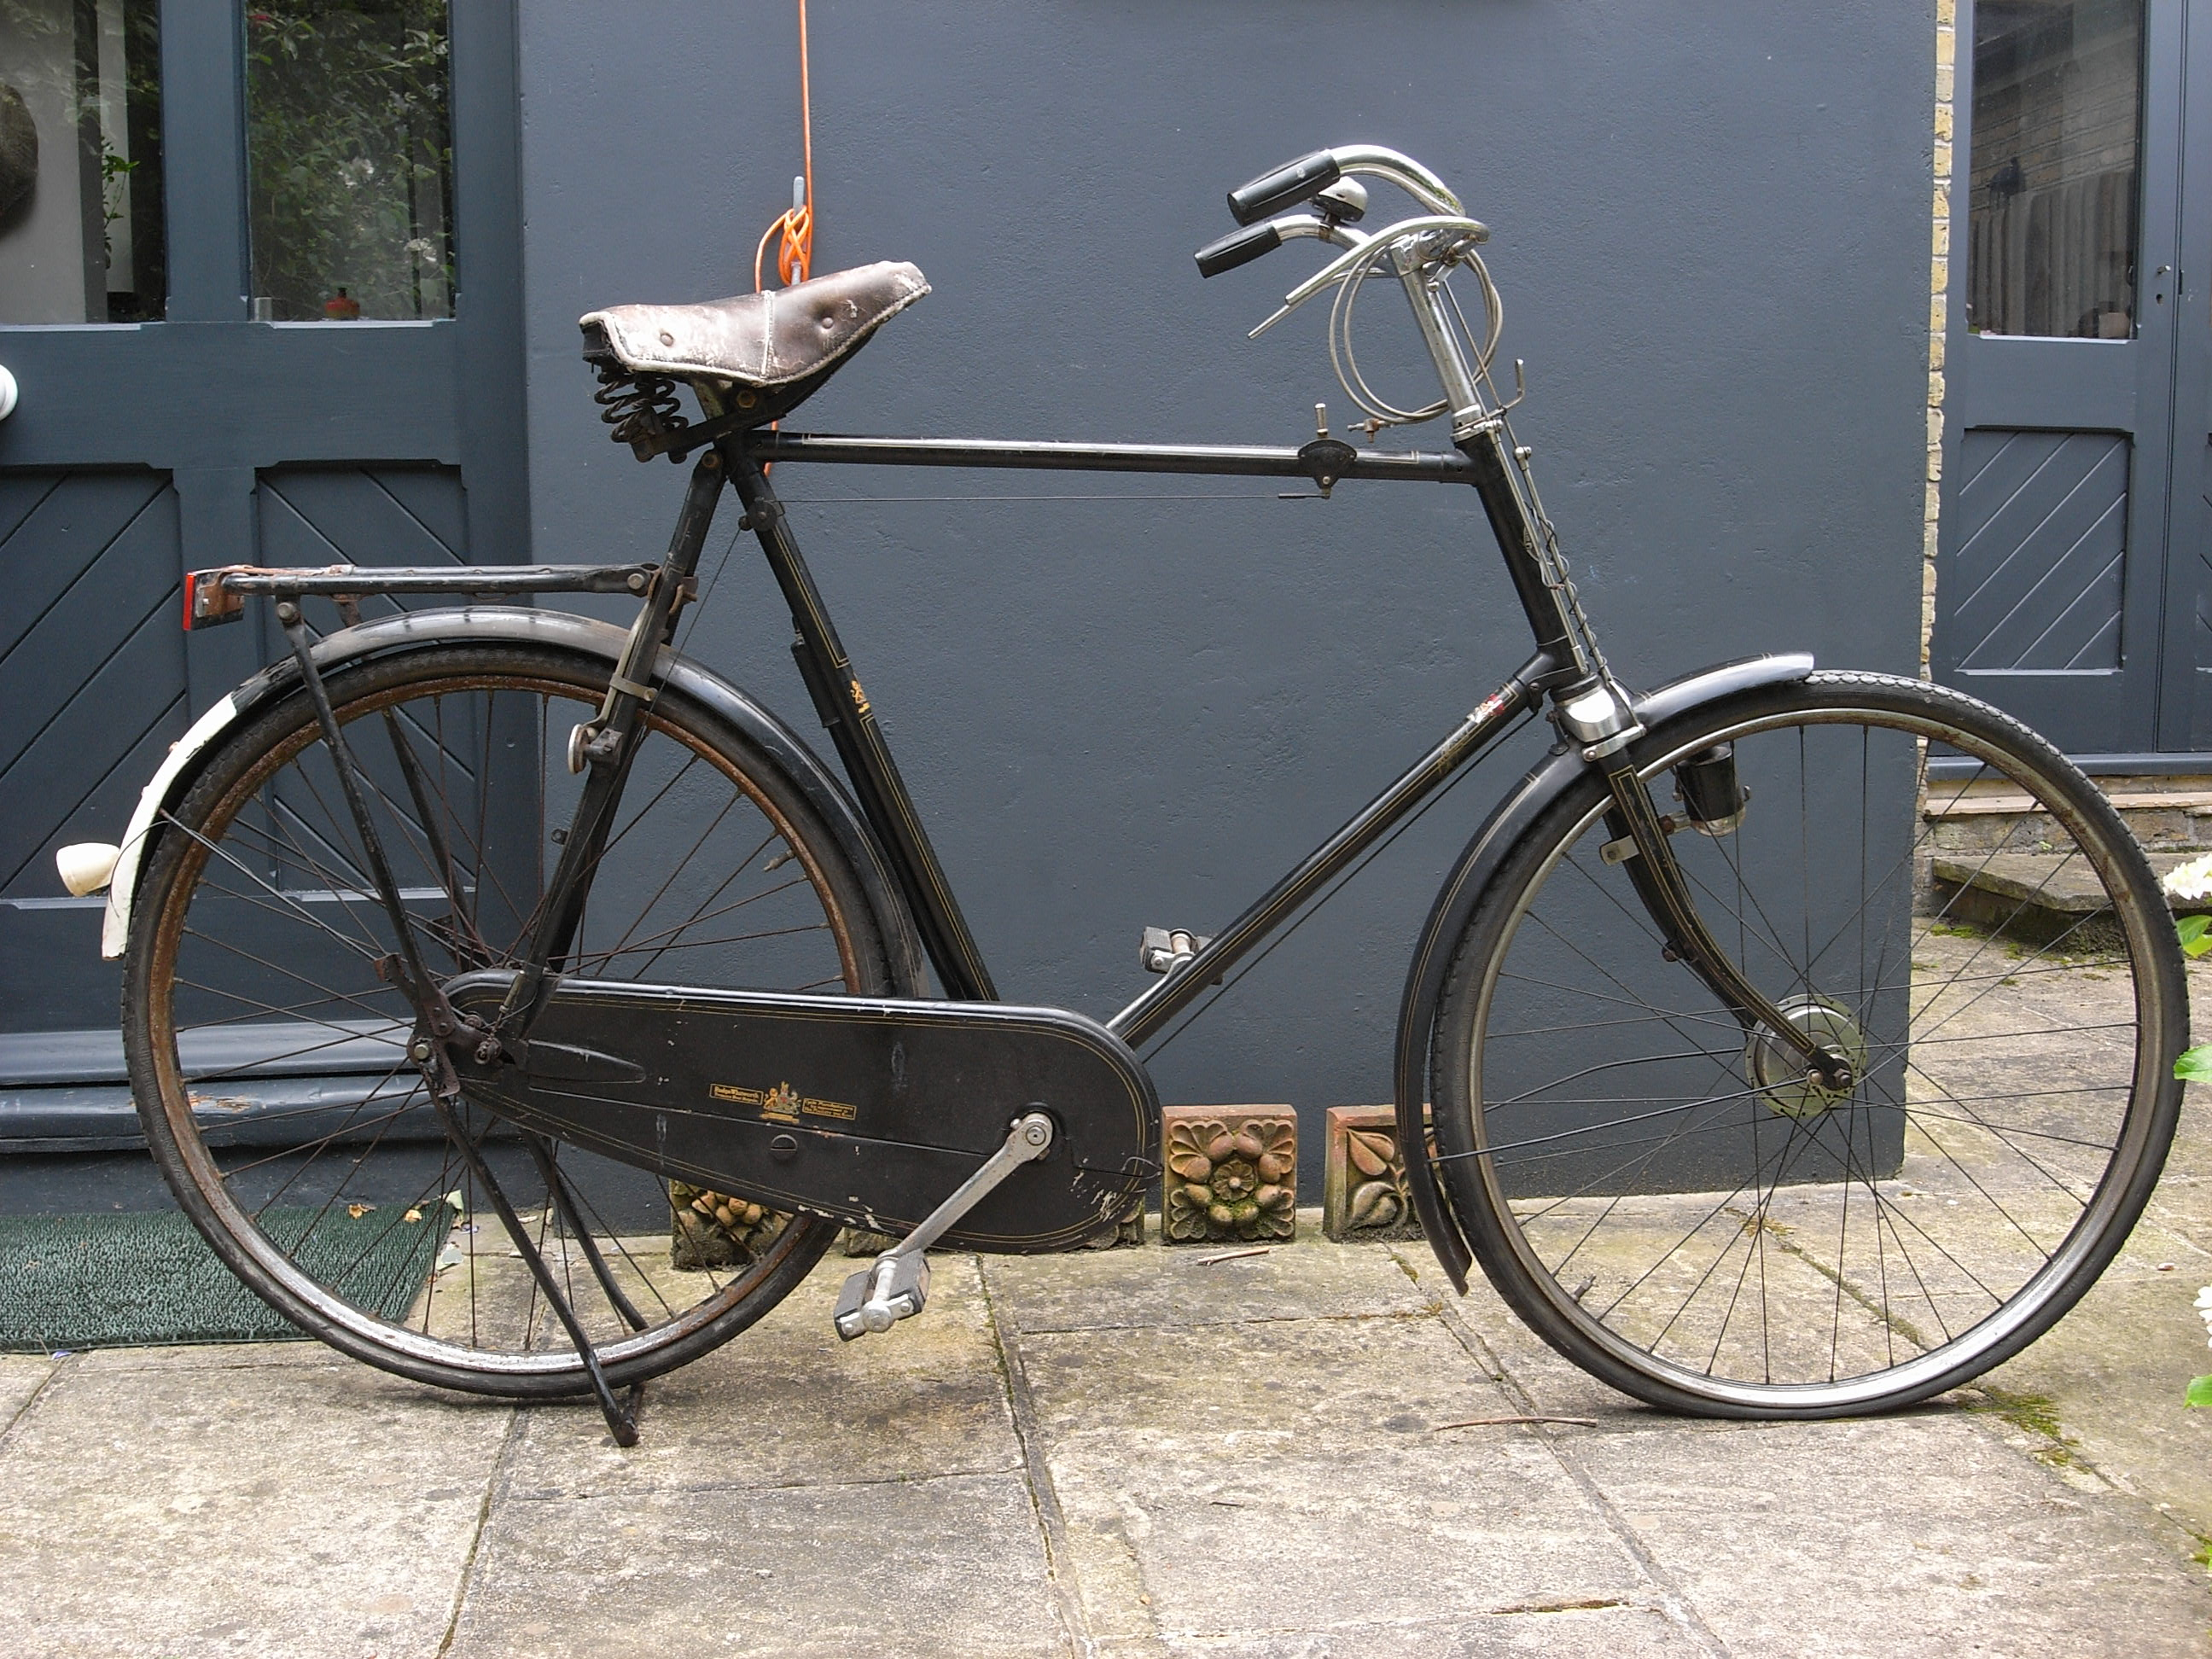 c.1935 Rudge Whitworth Crescent Roadster | Vintage Bicycle